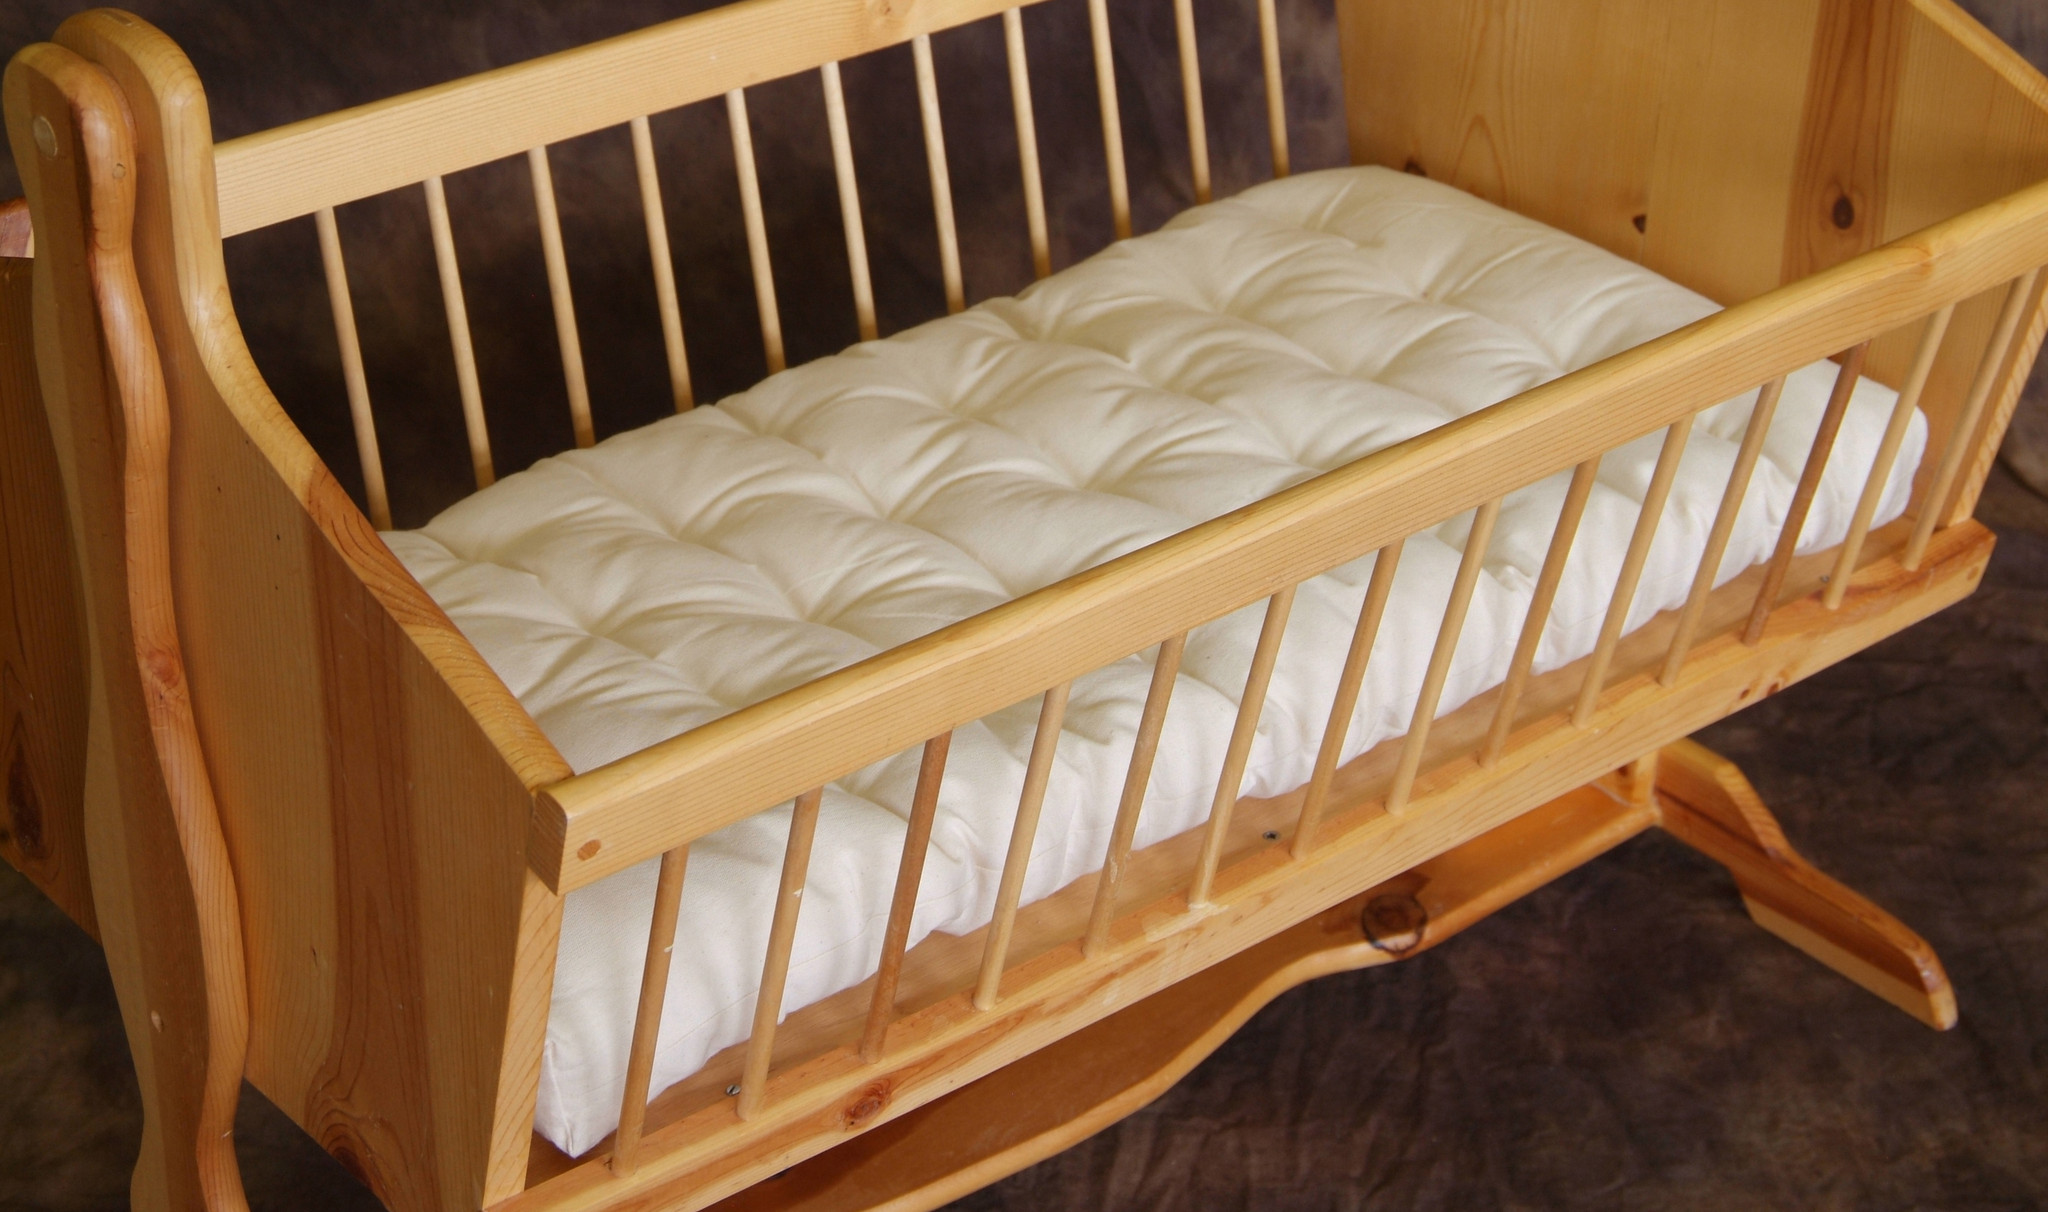 organic clothing : natural wool cradle bassinet mattress